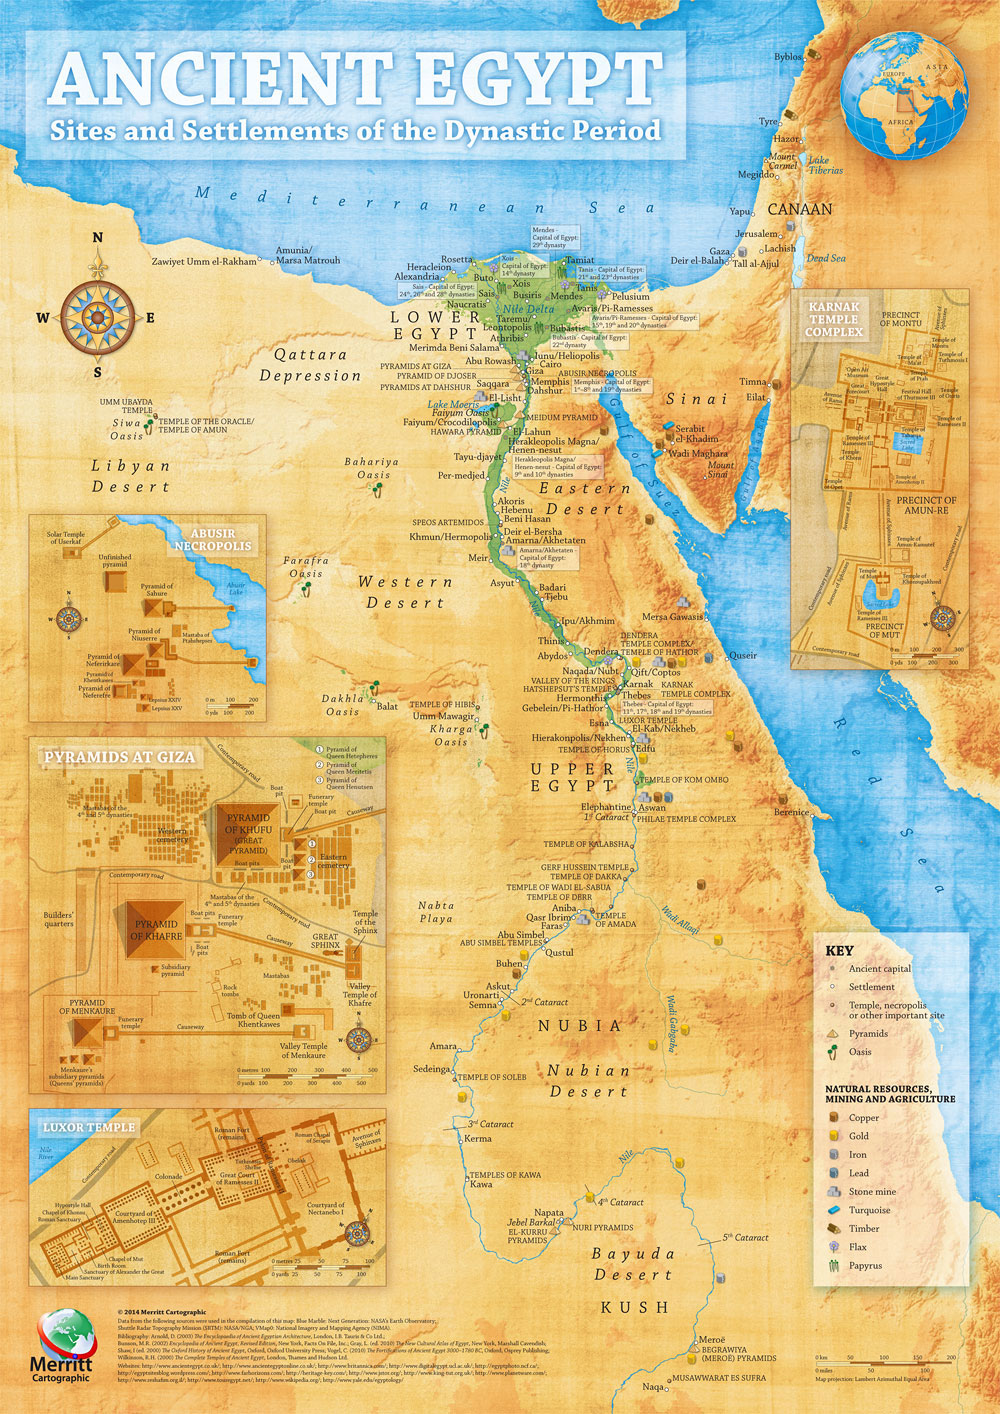 Ancient Egypt Map - Illustrative overview map highlighting the main sites and settlements of the Ancient Egyptian civilisation